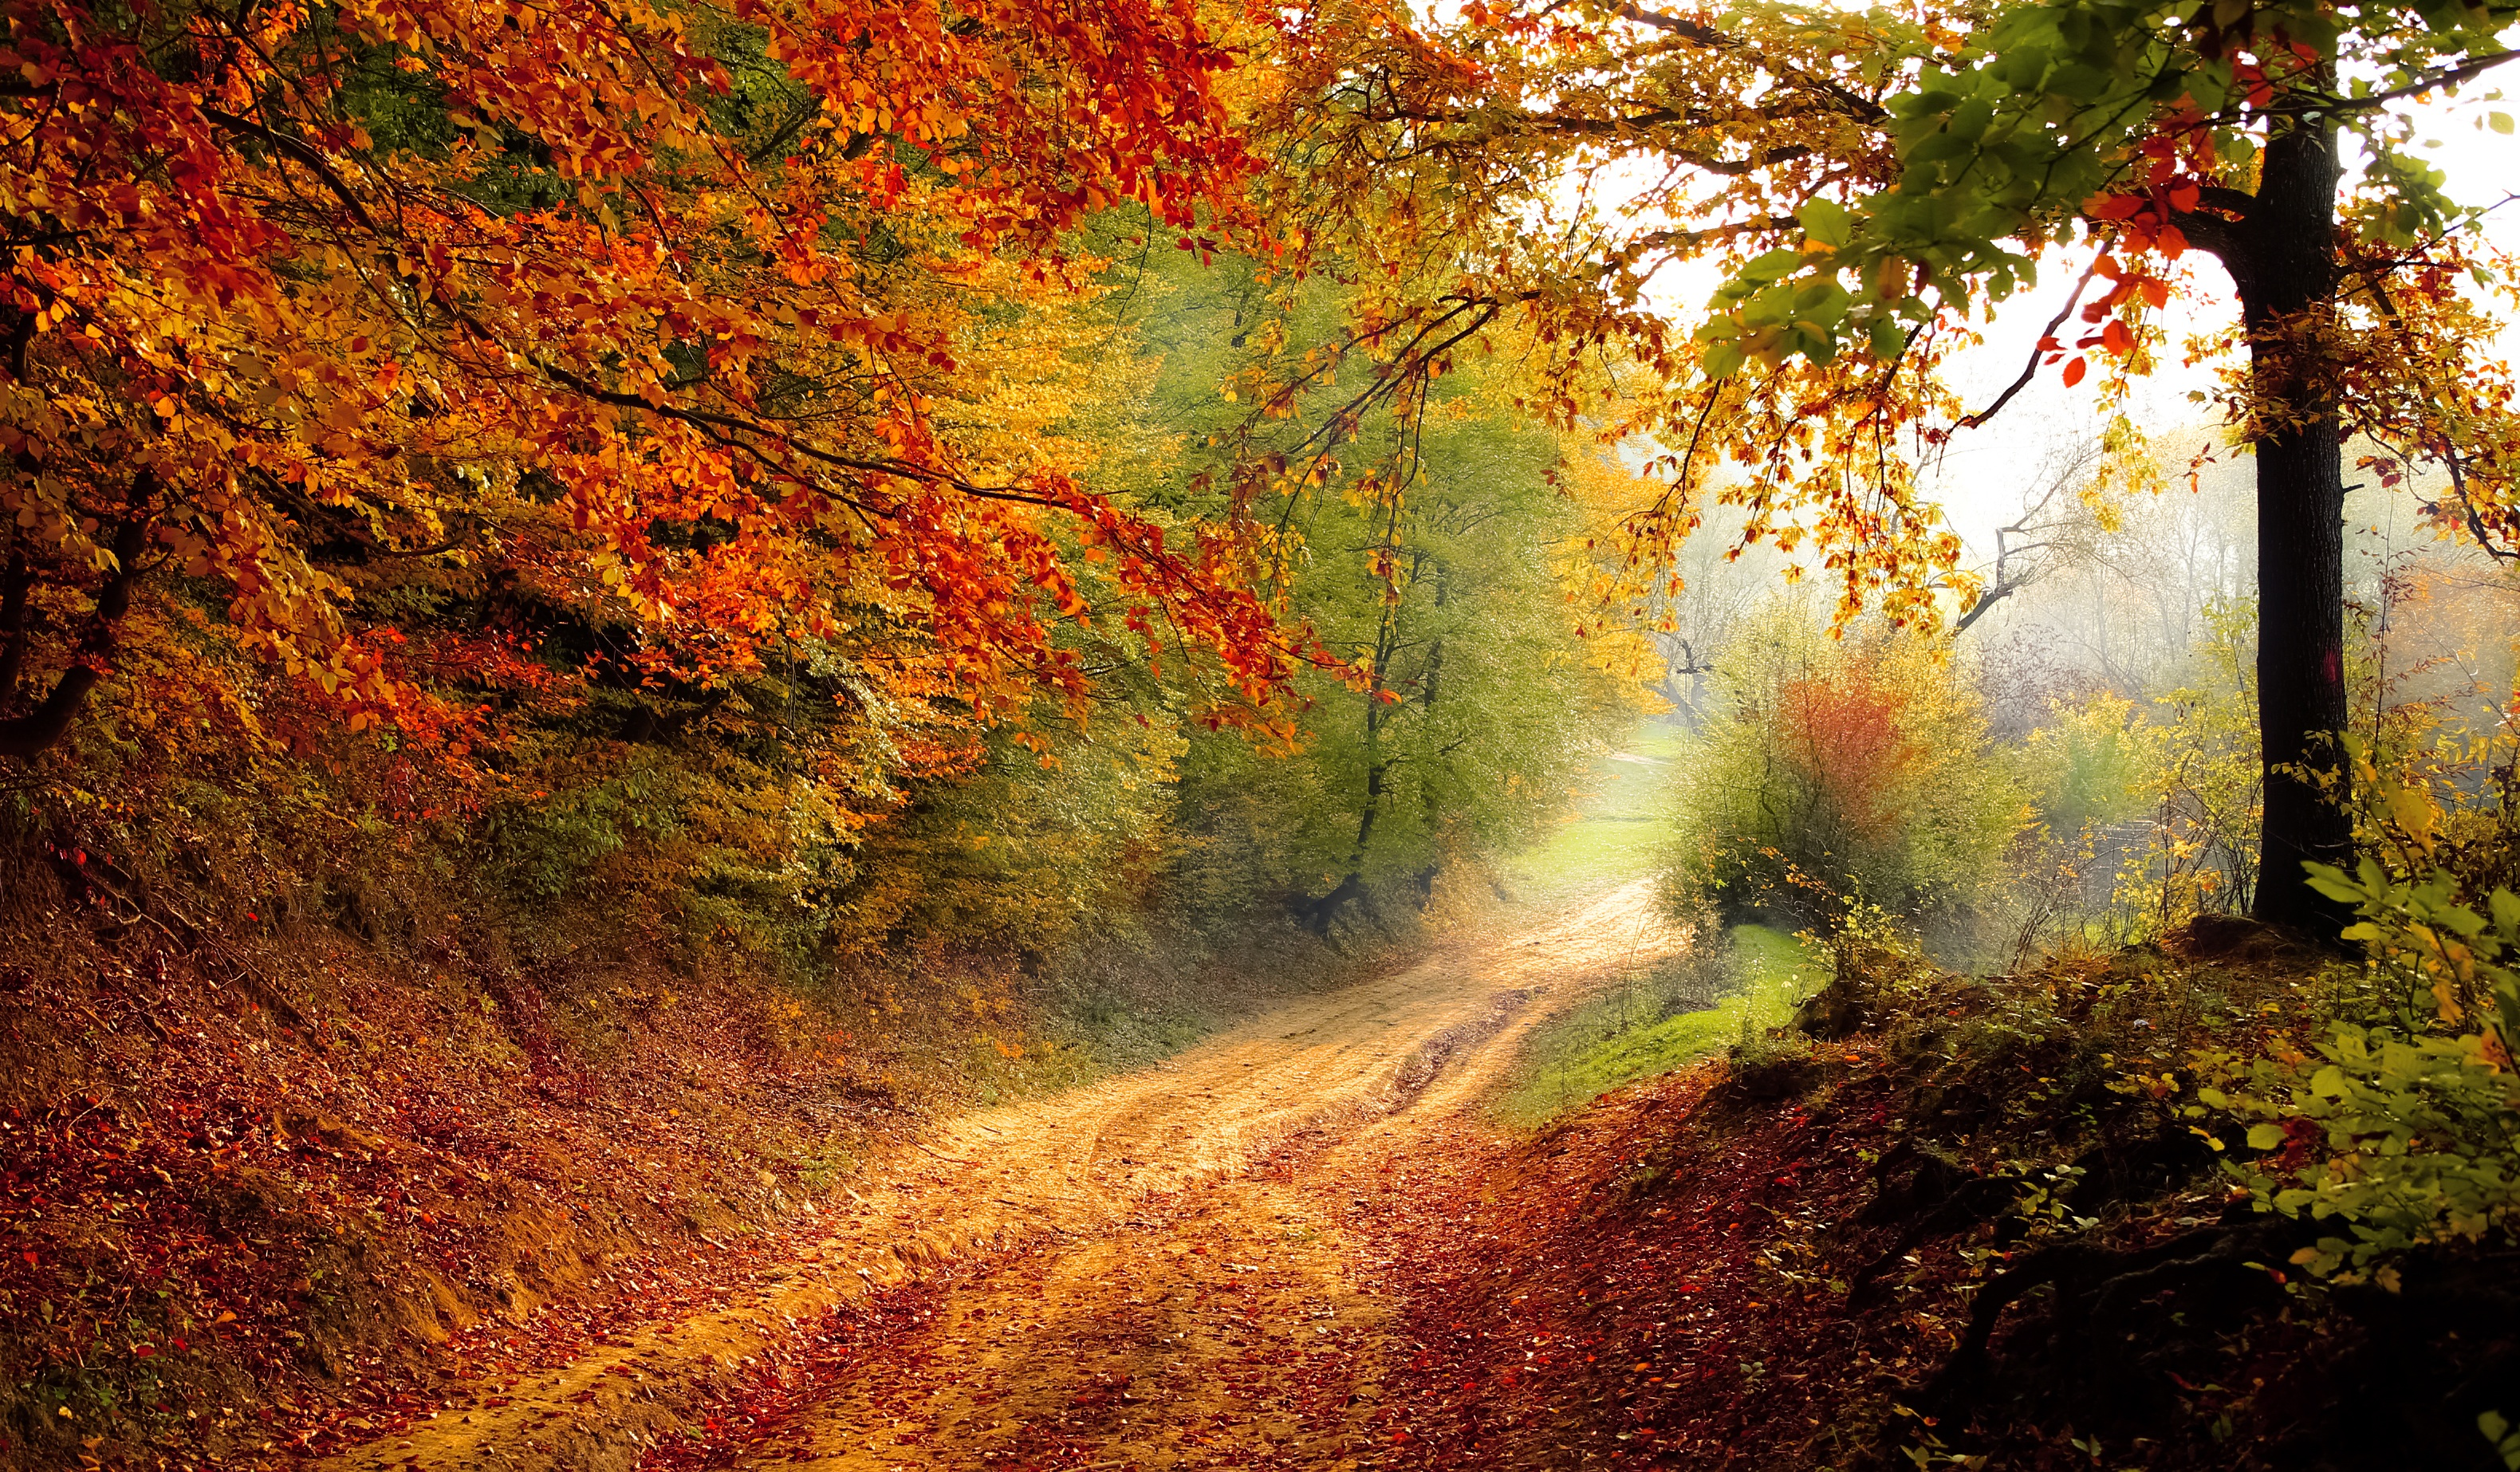 Wallpaper Autumn, Forest, Pathway, Fooliage, HD, Nature, #3830